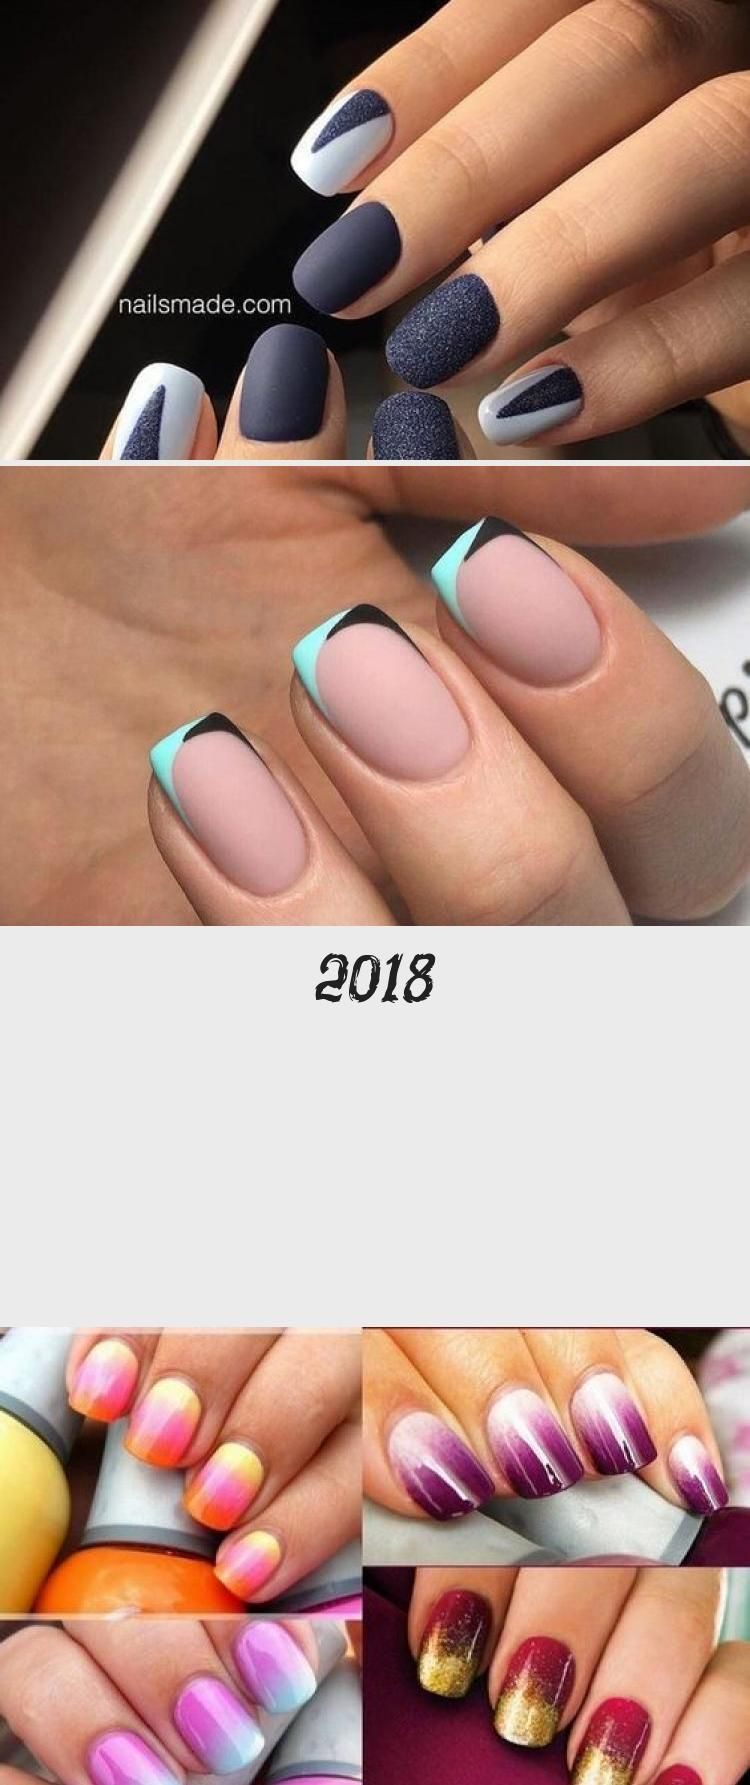 Photo of Manicure 2018: fashion trends for short nails – Nail